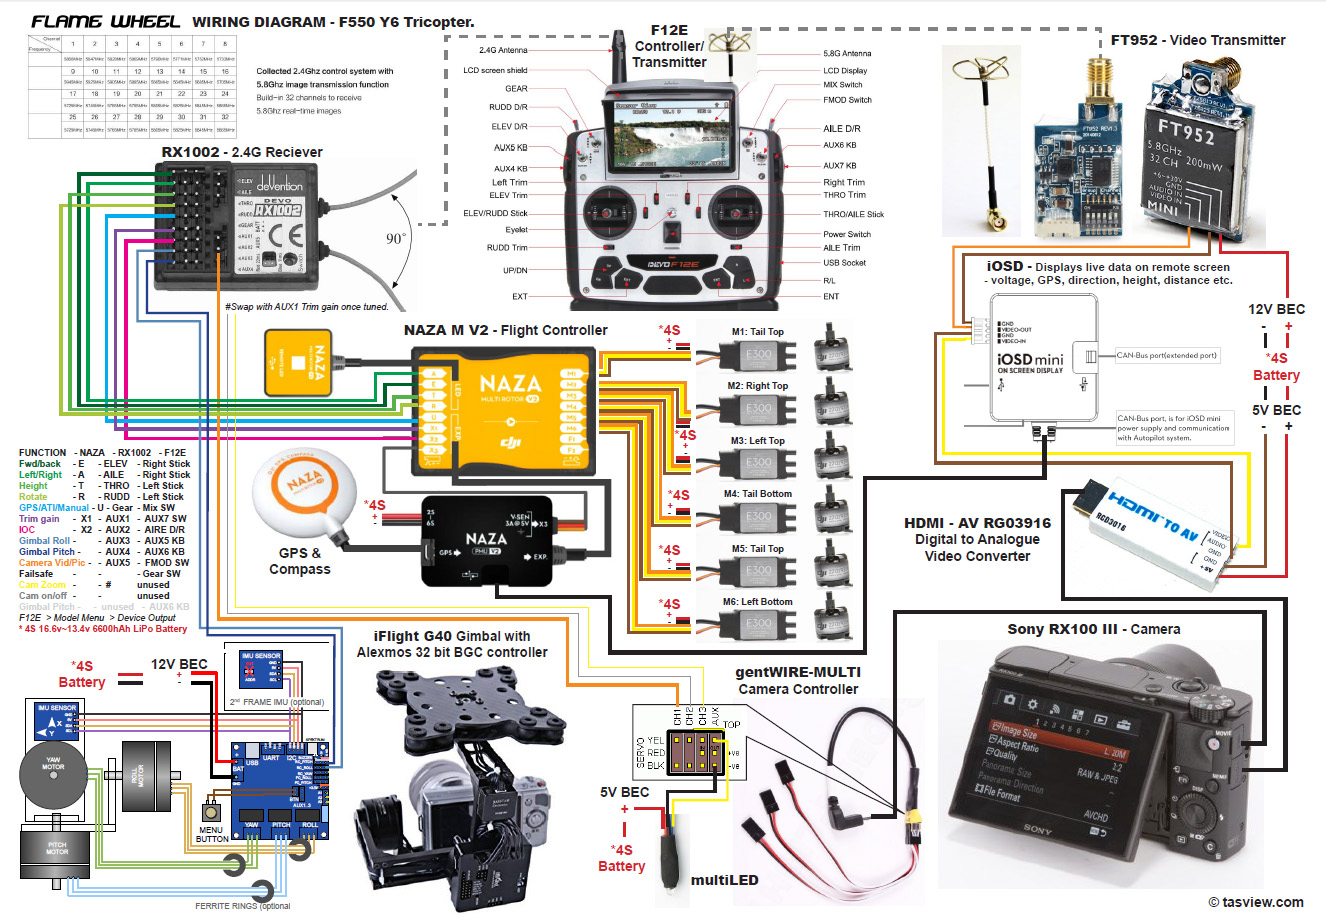 Naza Wiring Diagram - Home Wiring Diagrams on